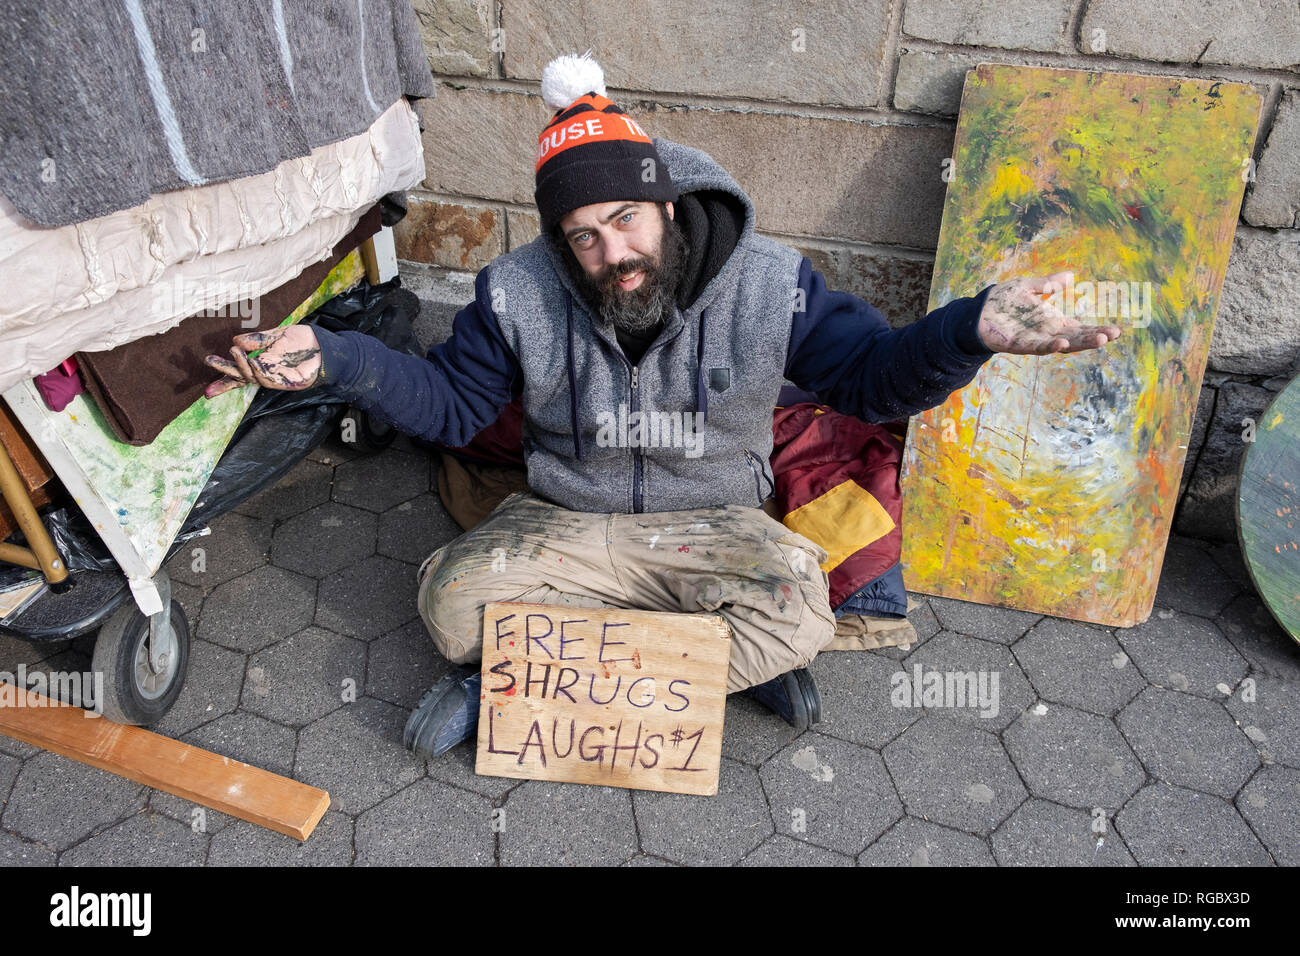 A busker, street performance artist & painter giving free shrugs but selling laughs for $1 each. In Union Square Park in Manhattan, New York City. - Stock Image